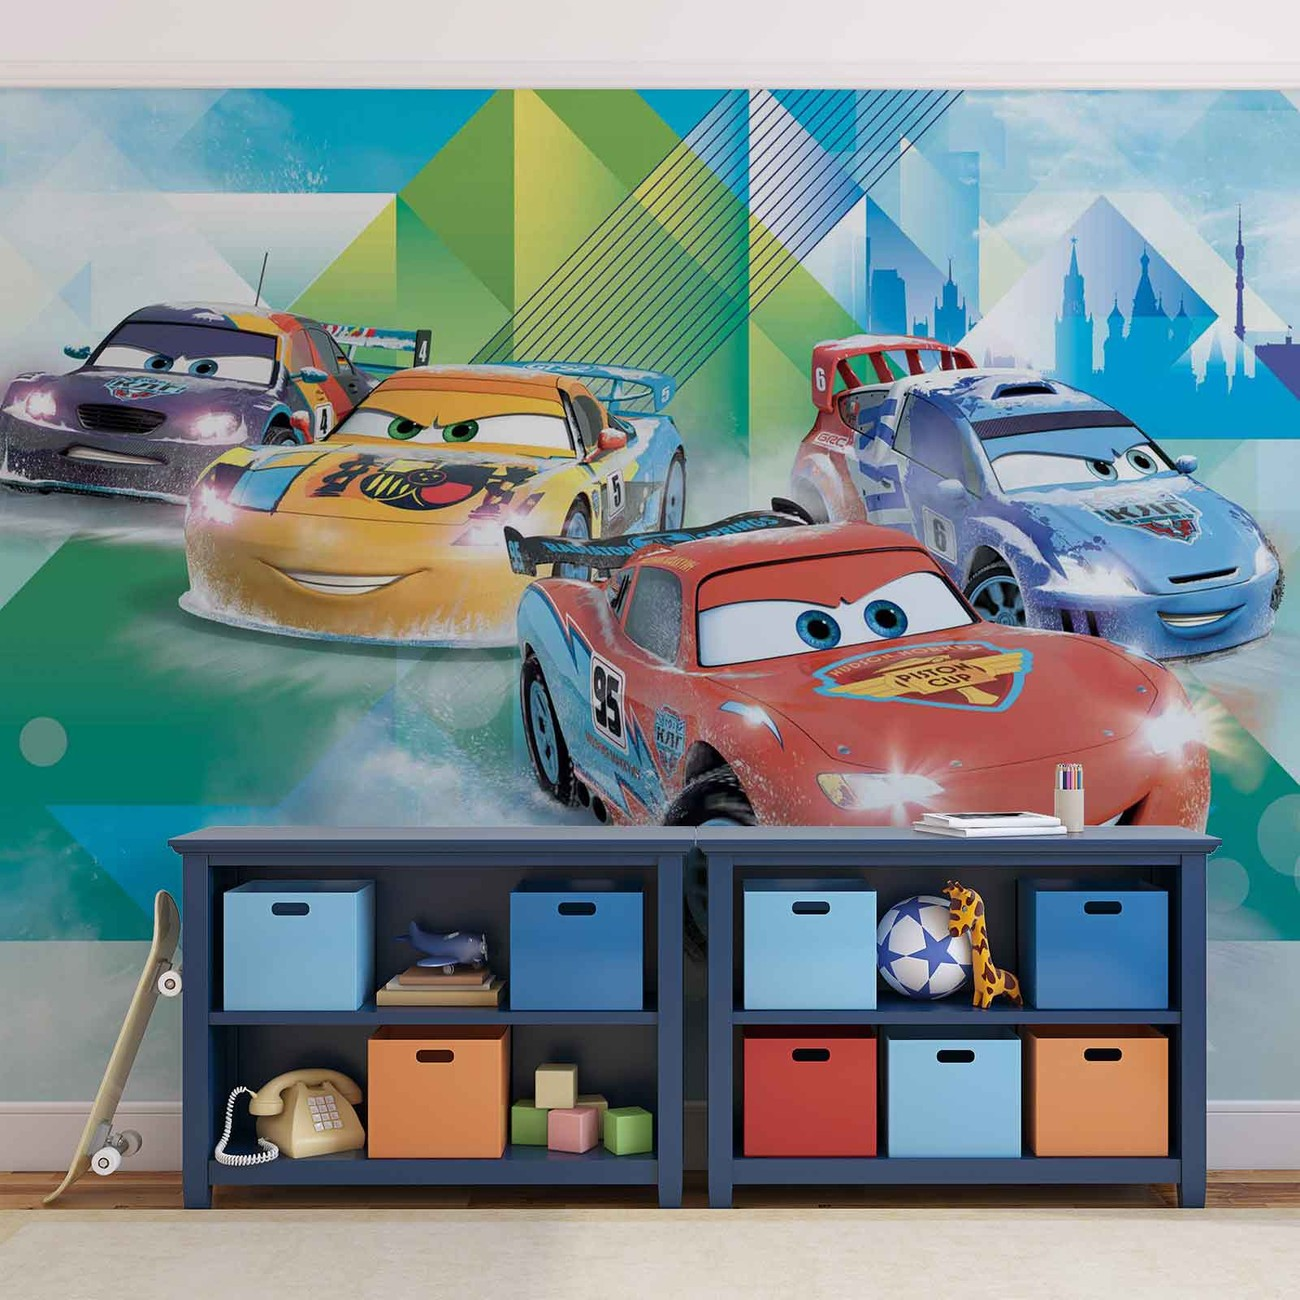 Disney cars lightning mcqueen camino wall paper mural for Cars movie wall mural